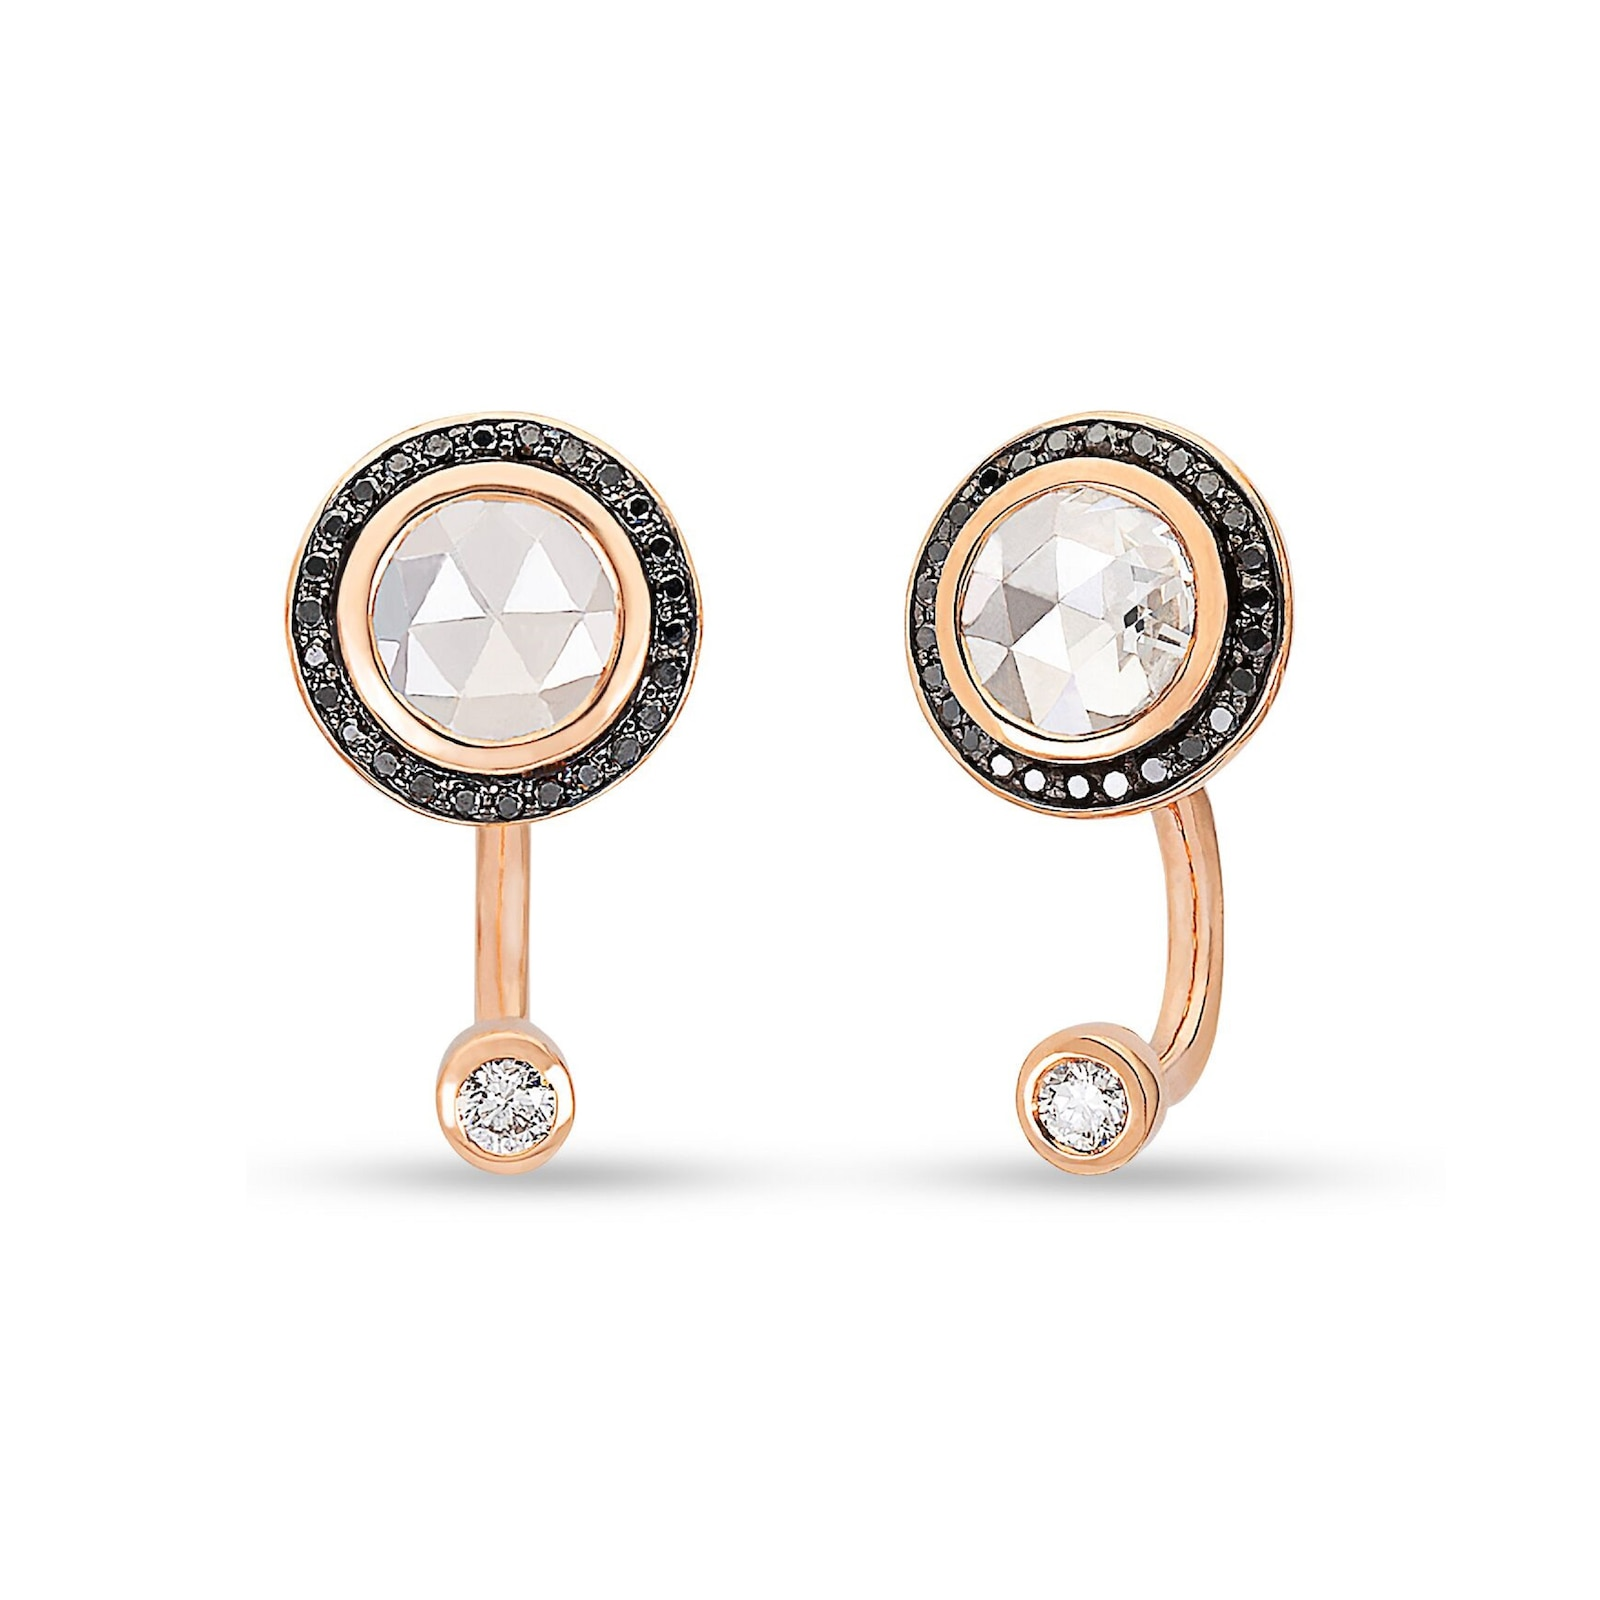 Pamela Love Gravitation Diamond Earrings